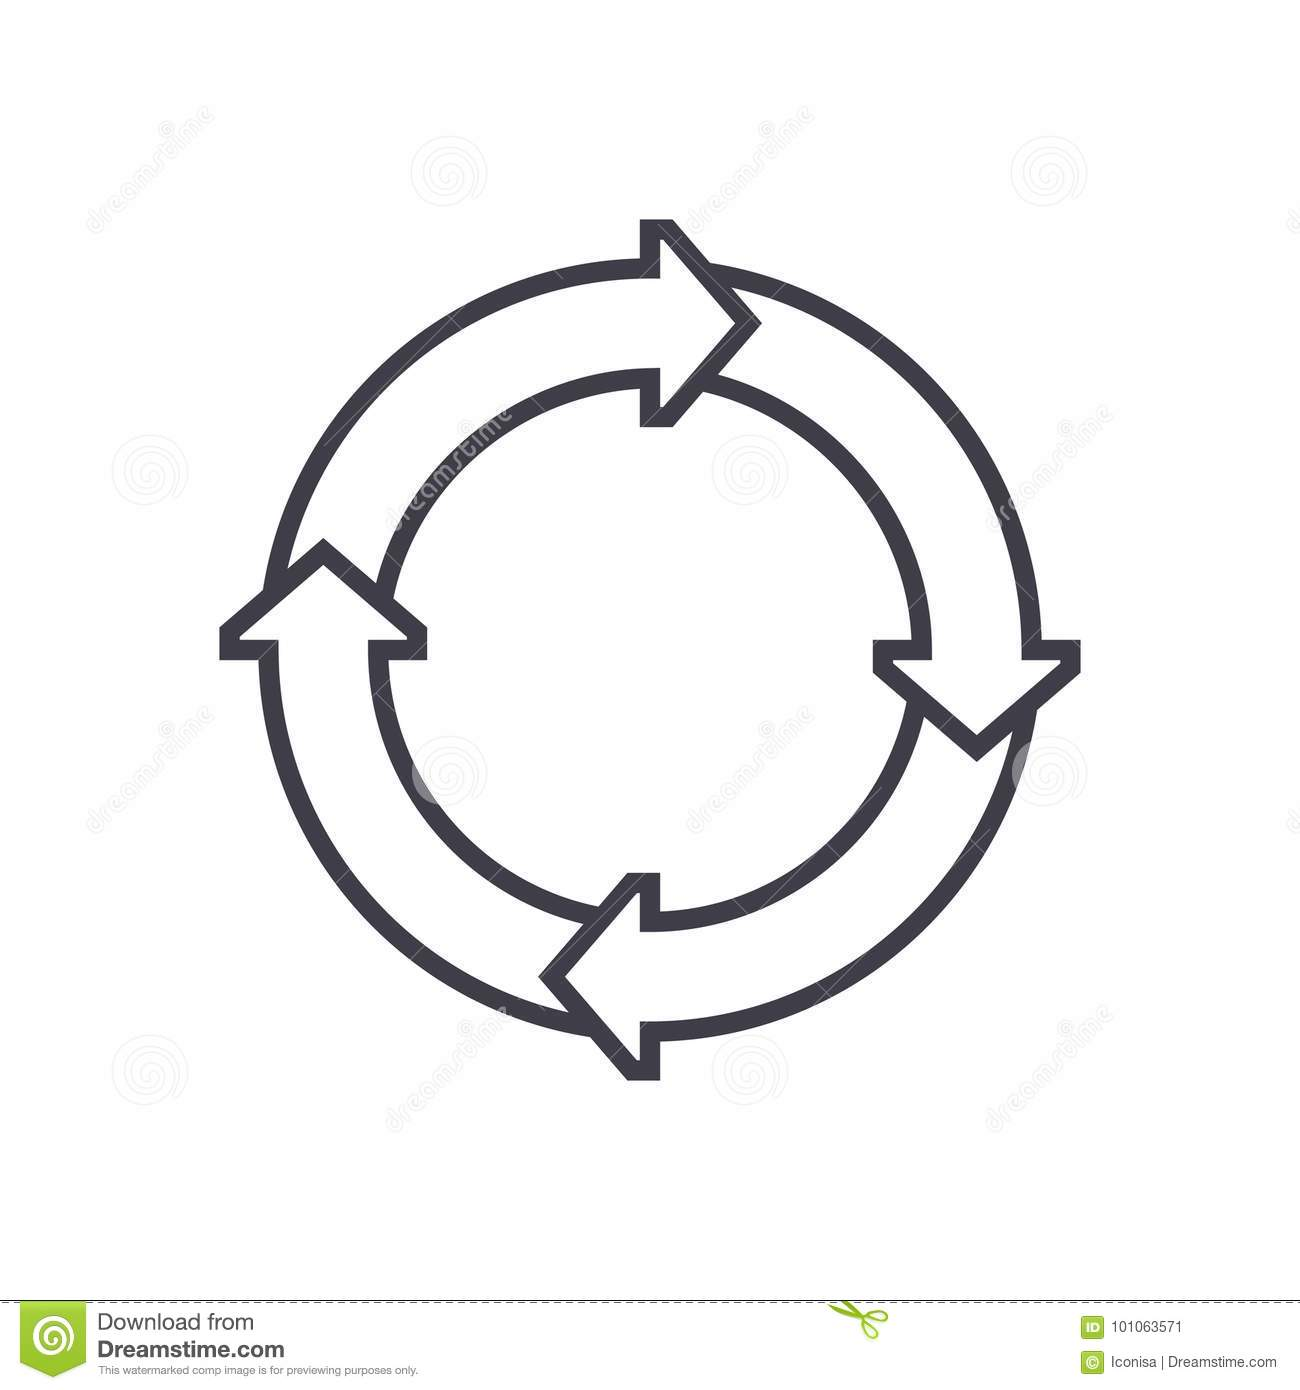 Process Diagrams Vector Line Icon Sign Illustration On